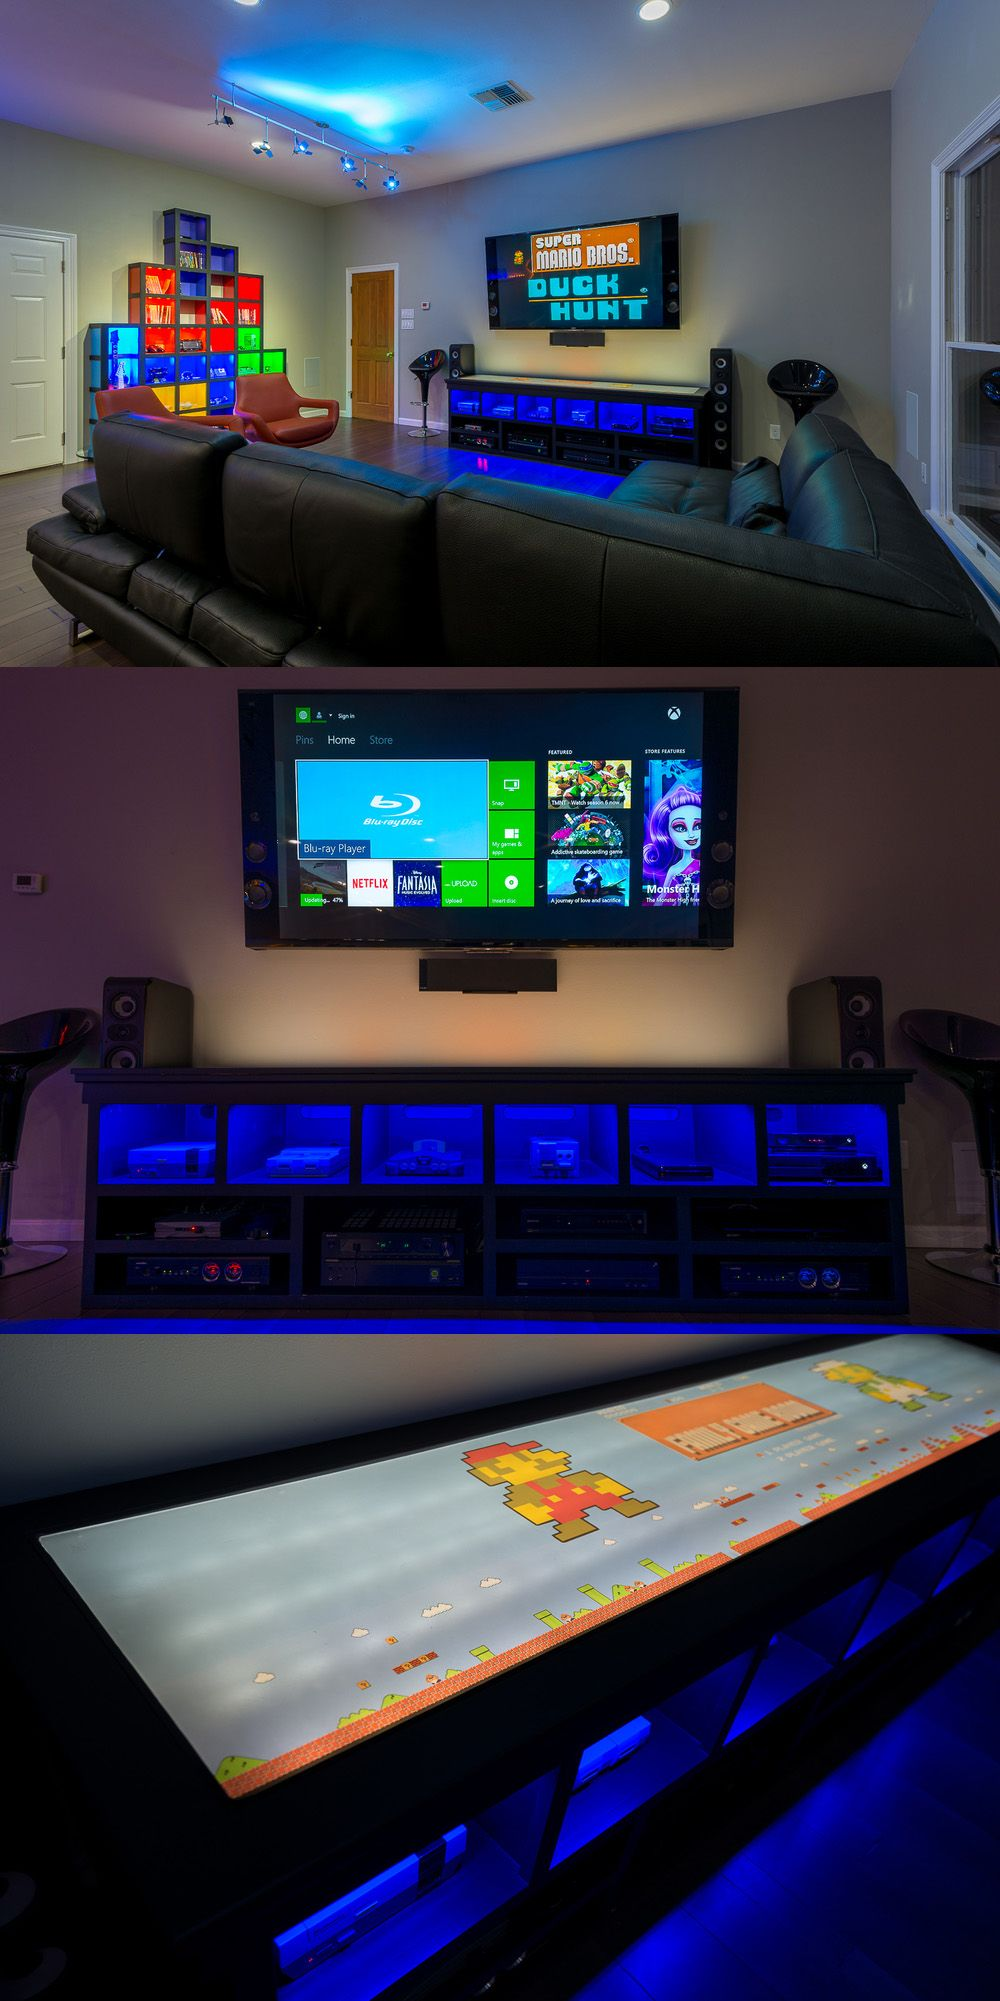 Led Schrank Family Game Room Tv Media Center 6 Generations Of Gaming Consoles